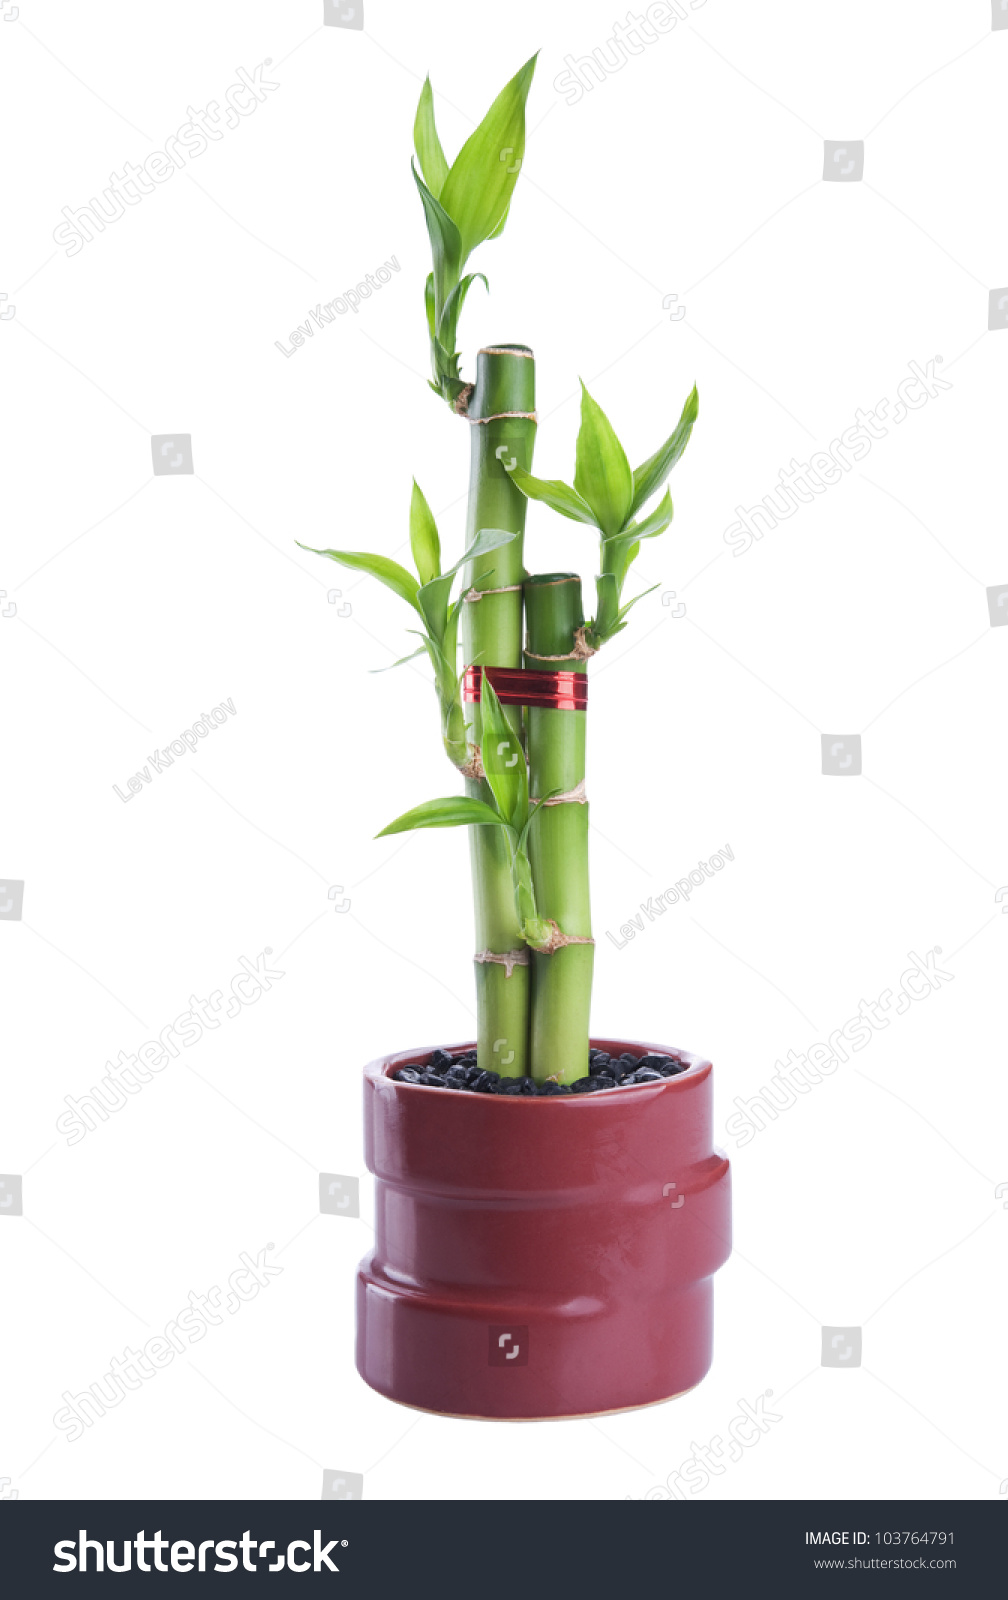 Chinese lucky bamboo red ribbon happiness stock photo 103764791 chinese lucky bamboo with red ribbon happiness symbol isolated on a white background reviewsmspy